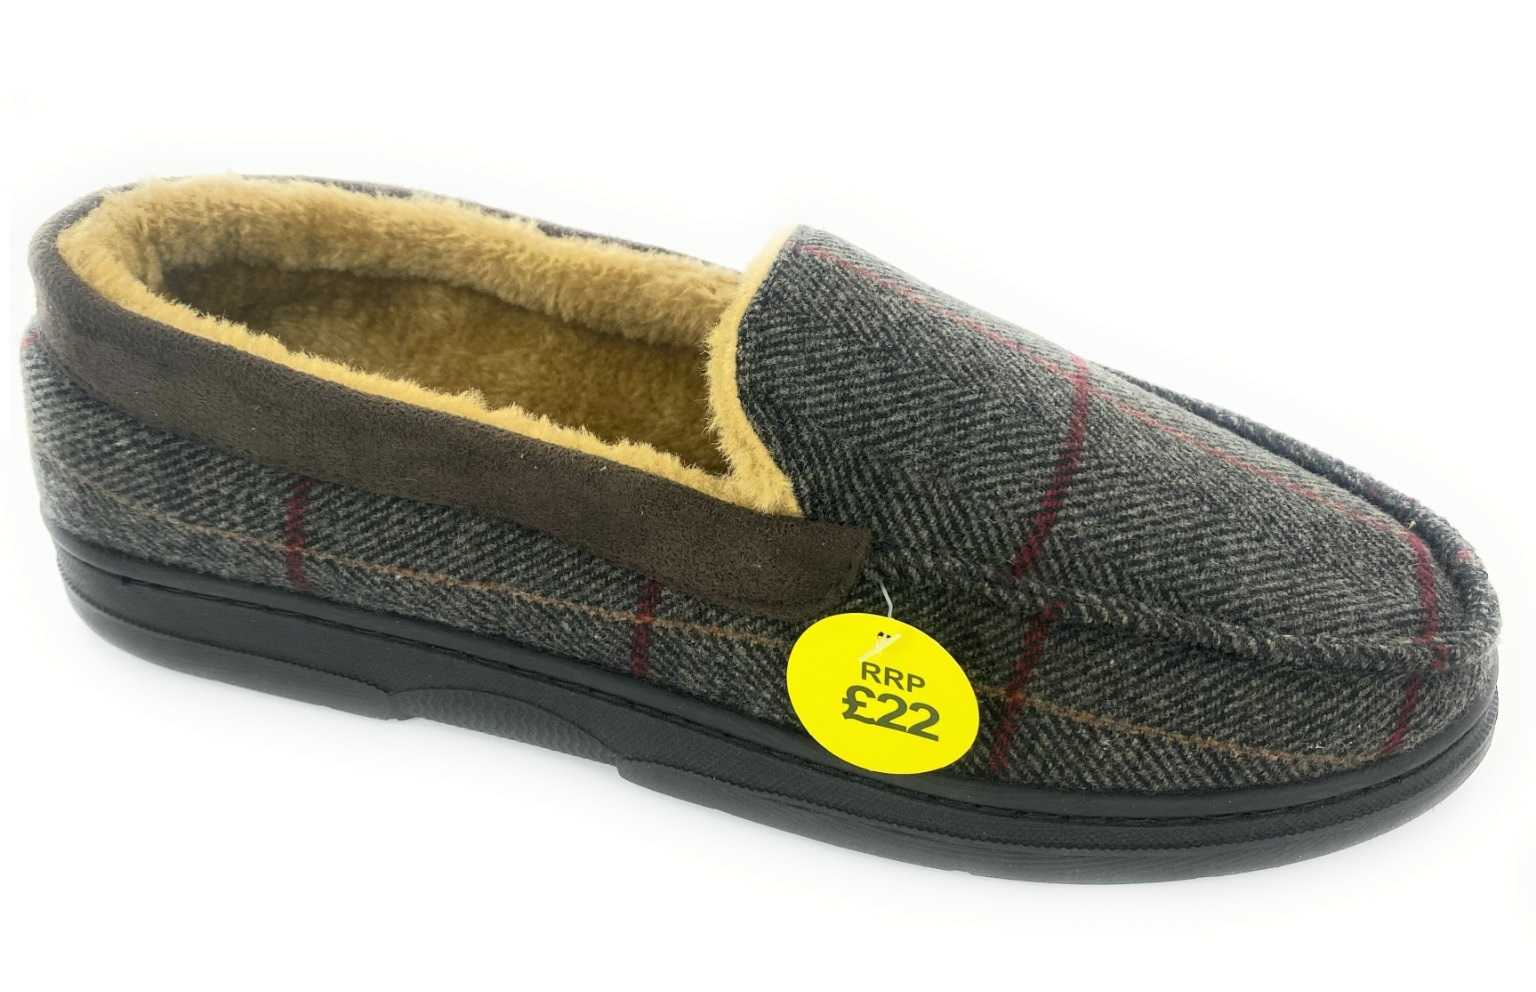 thumbnail 5 - MENS CHECK WARM MOCCASINS FAUX SUEDE SHEEPSKIN FUR LINED WINTER SLIPPERS SHOES